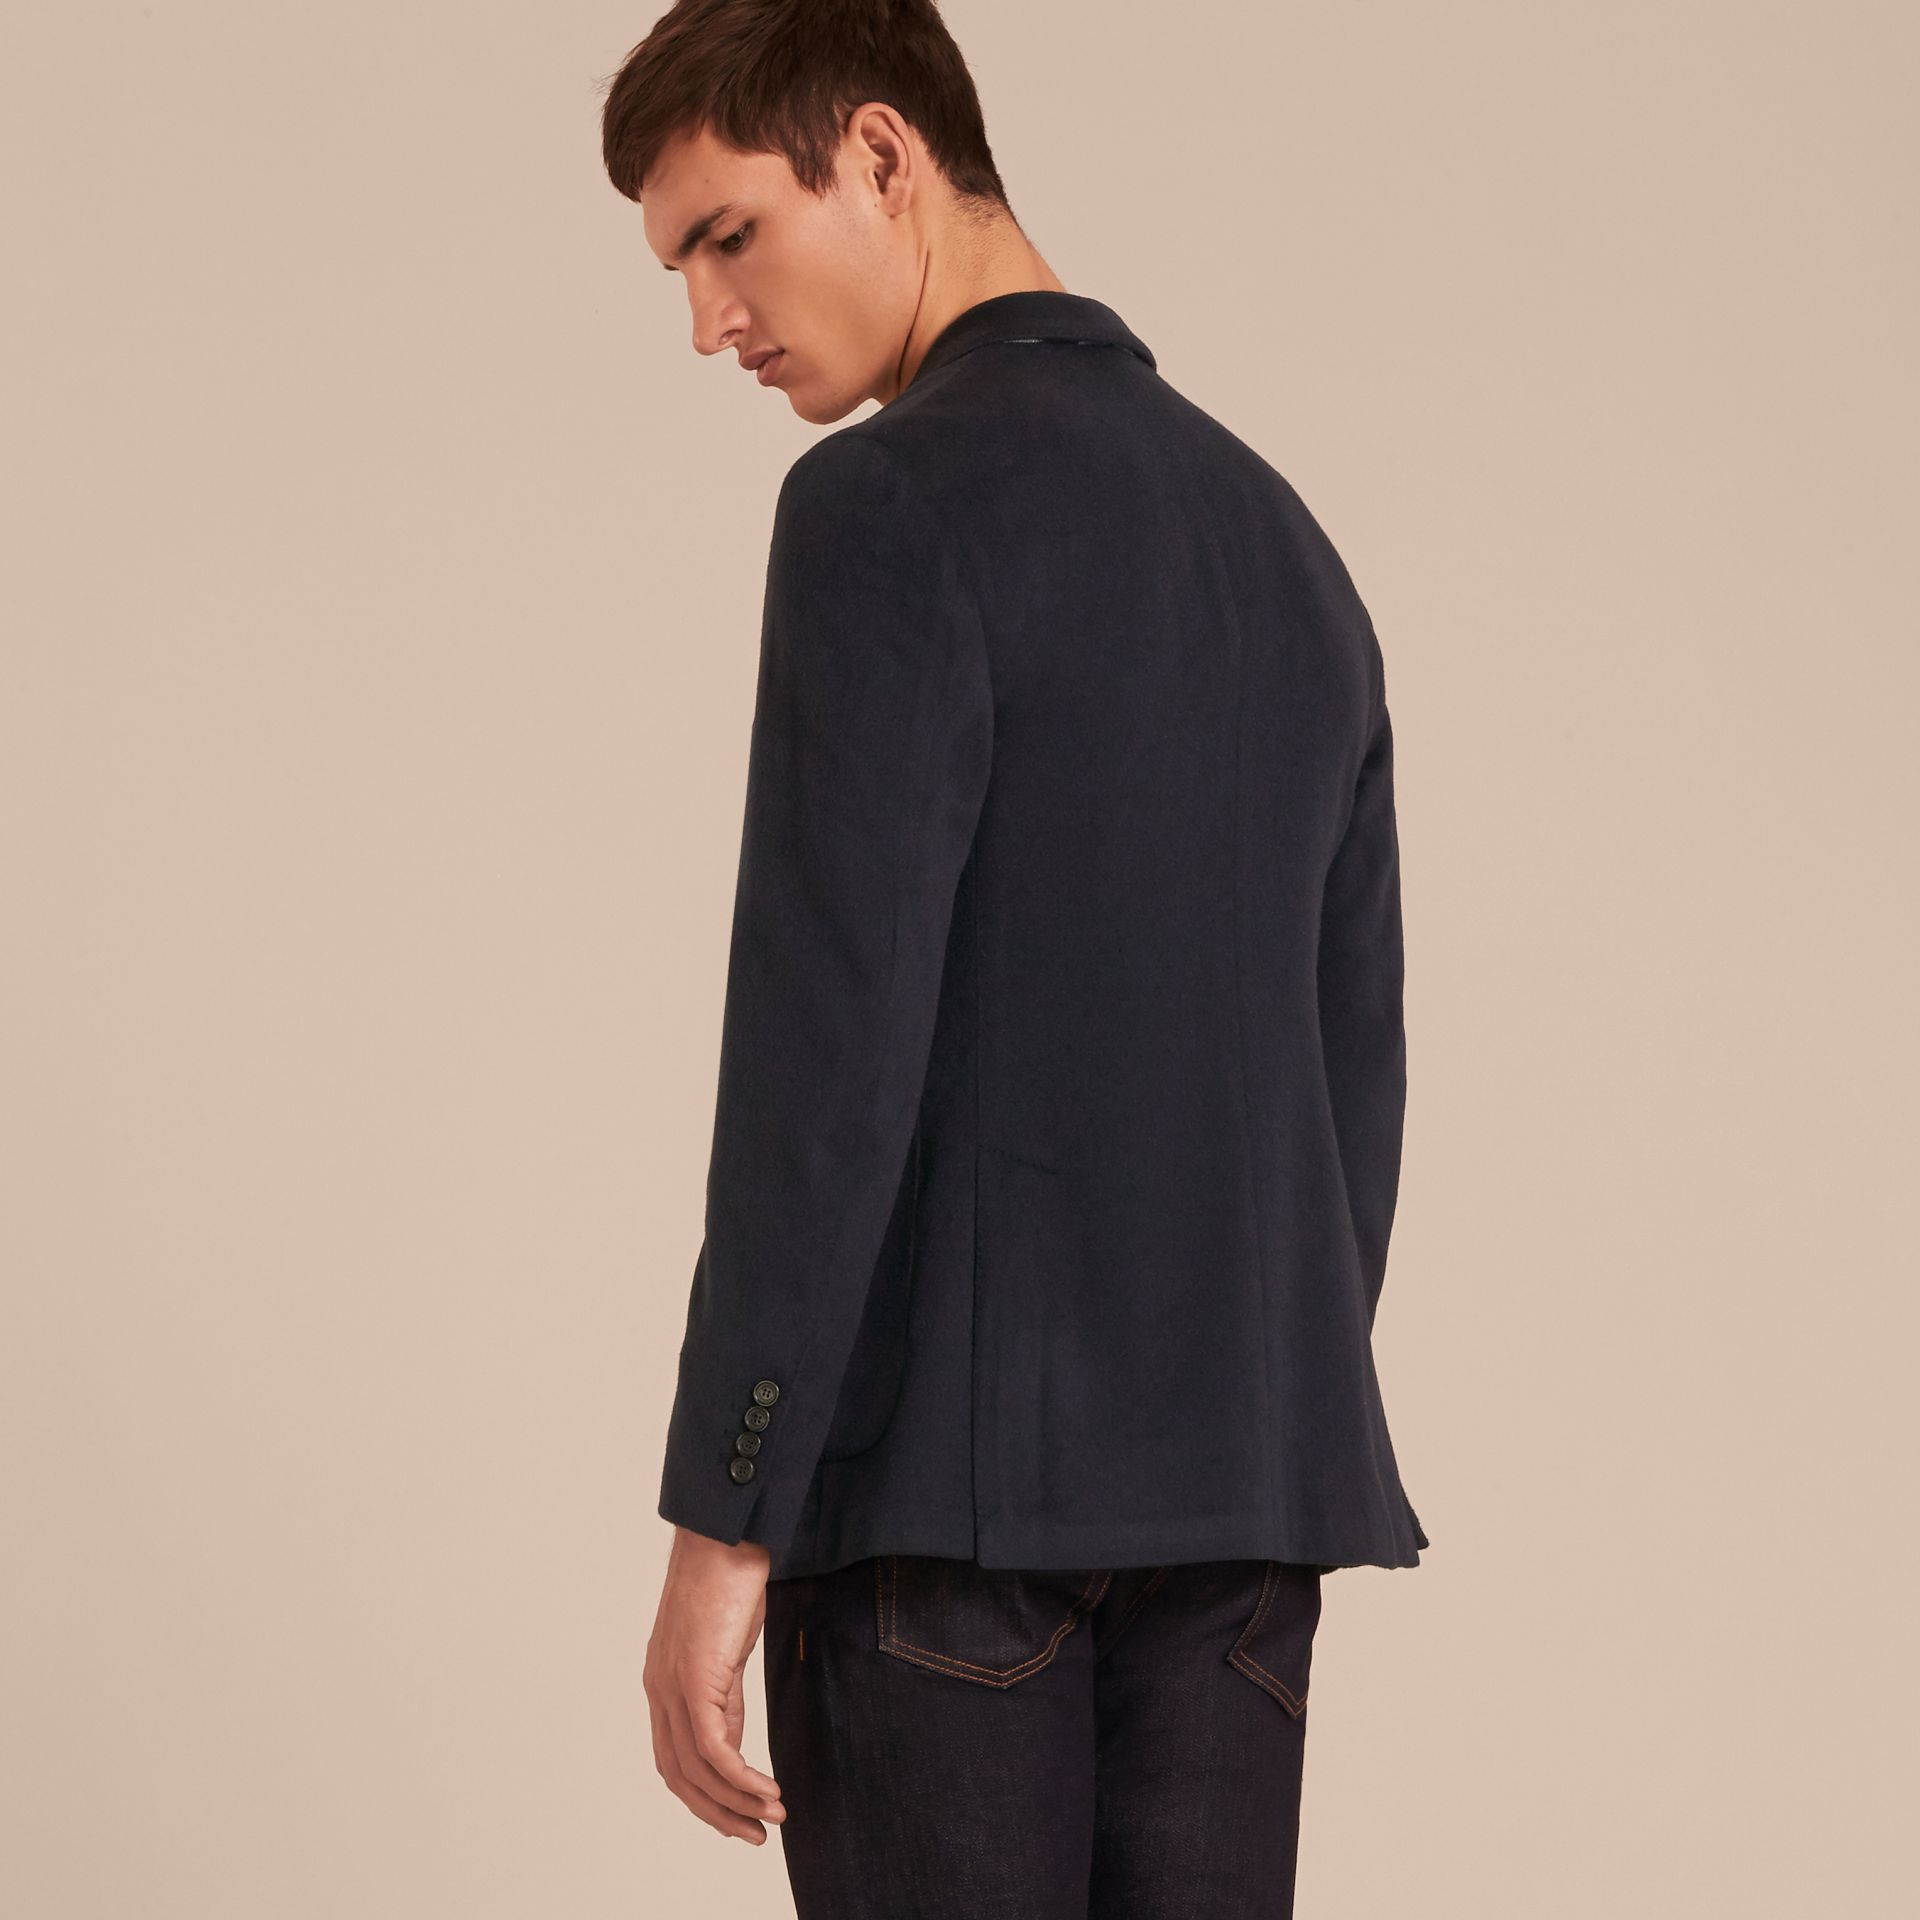 Navy melange Modern Fit Lightweight Cashmere Tailored Jacket Navy Melange - gallery image 3